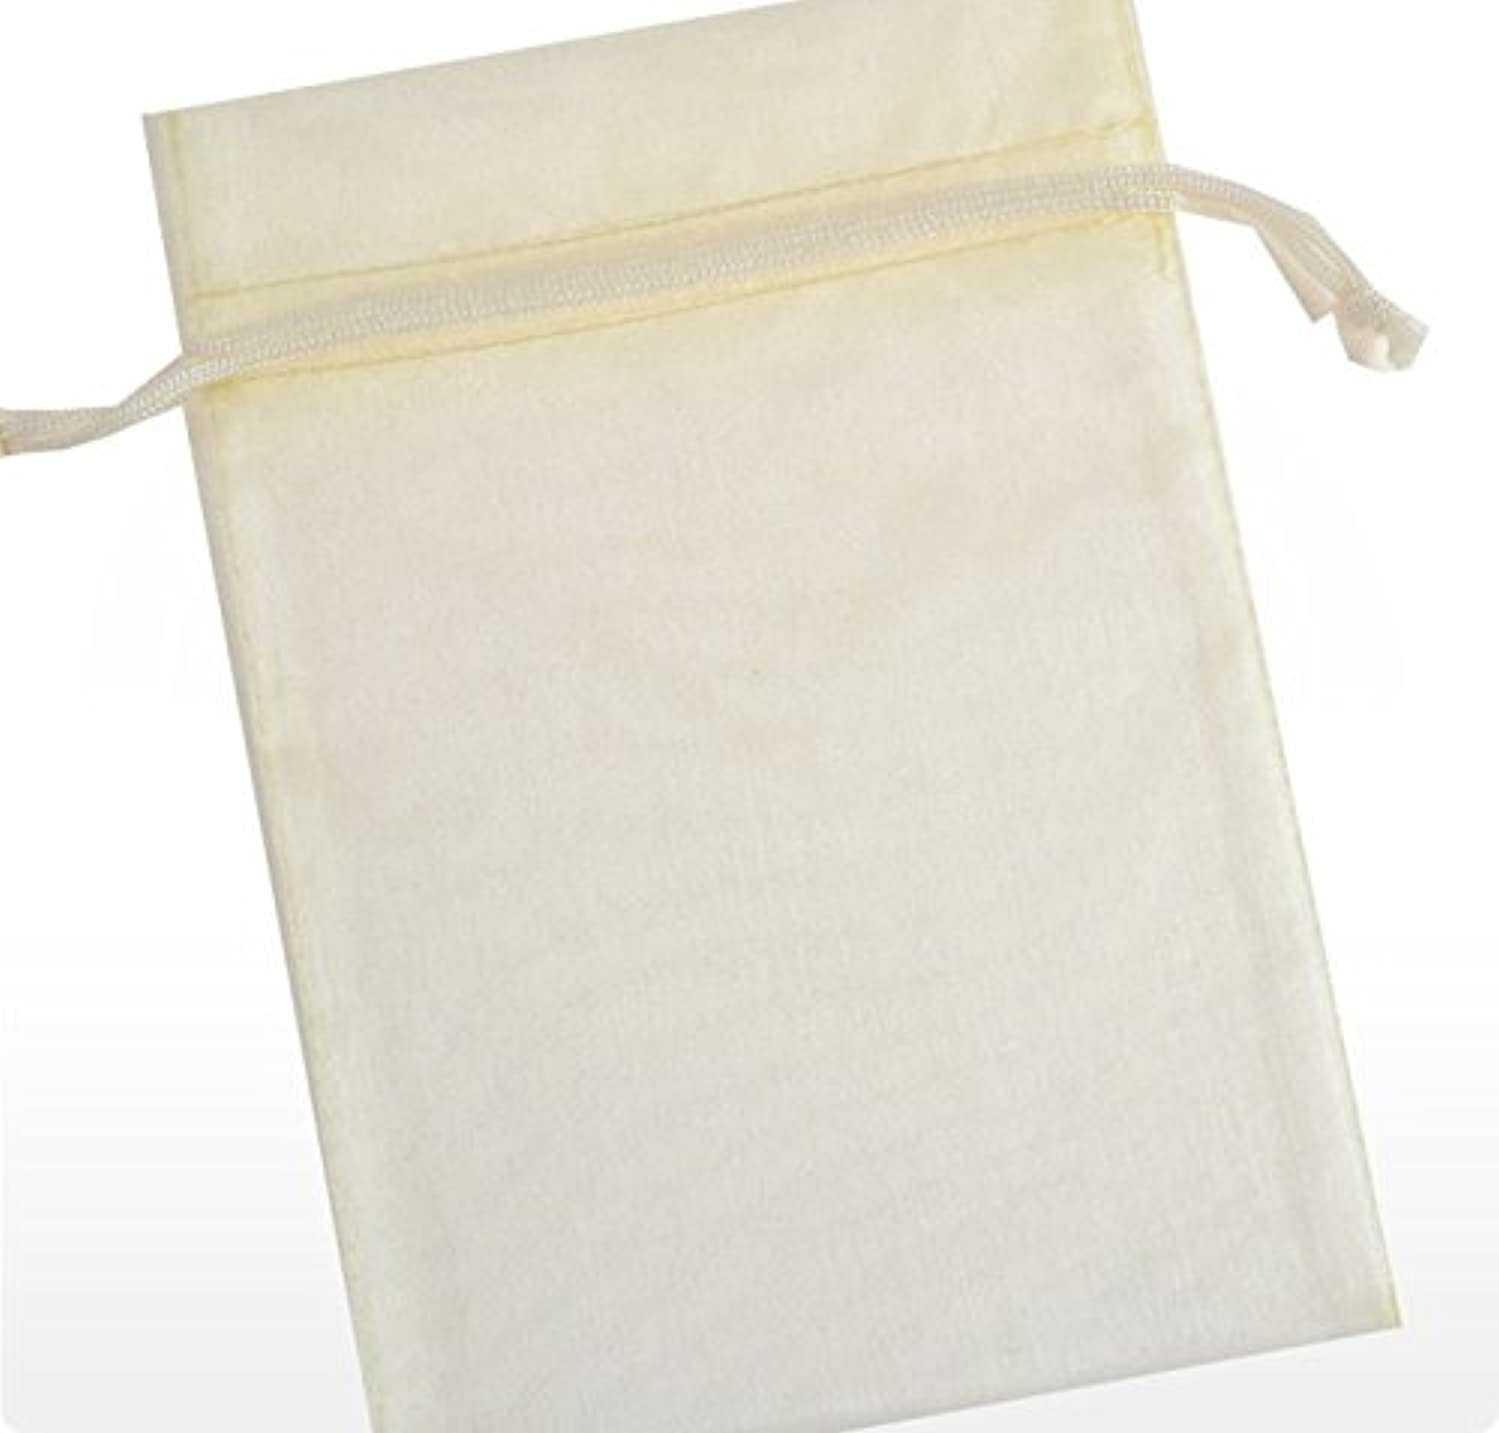 60 Pcs Sheer Organza Drawstring Pouches Gift Bags Ivory Color 6x9 Inches